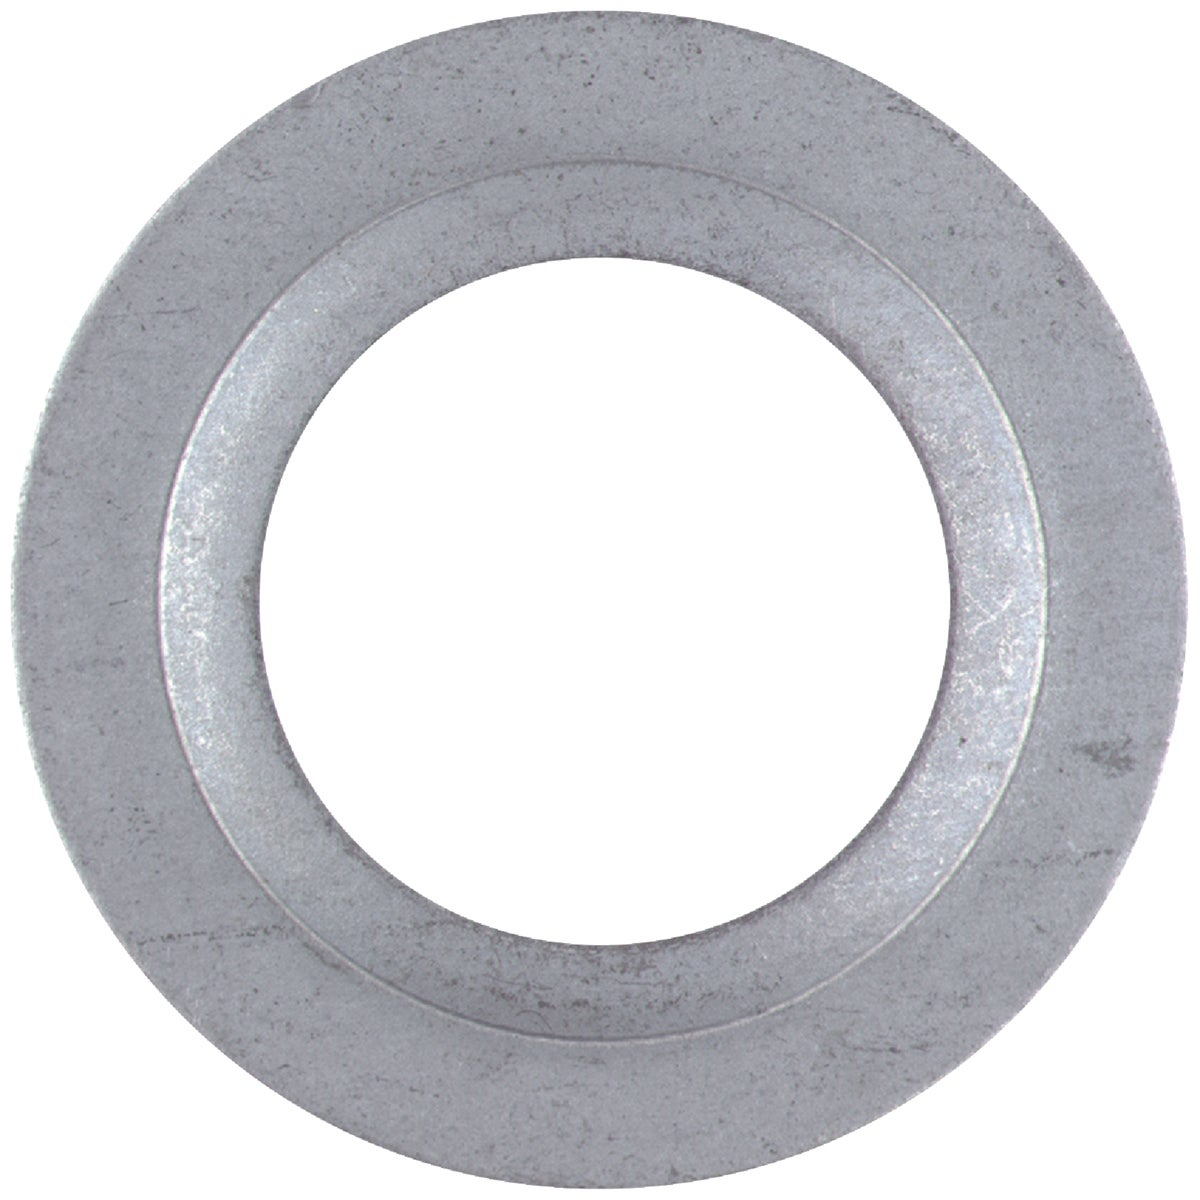 3/4X1/2 REDUCE WASHER - WA1212 by Thomas & Betts